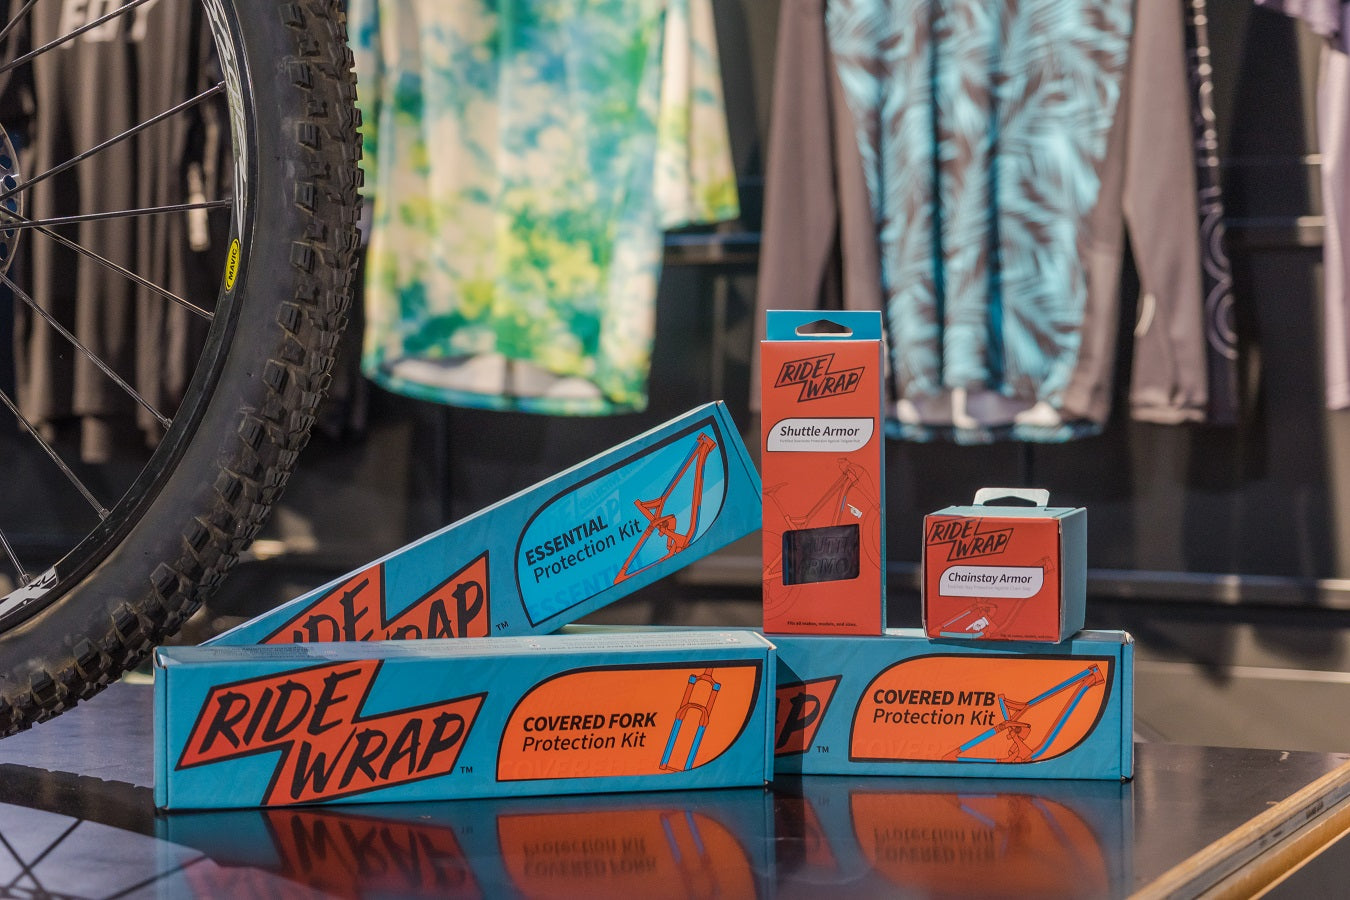 RideWrap Mountain Bike Protection Kit Essential Covered For The Riders